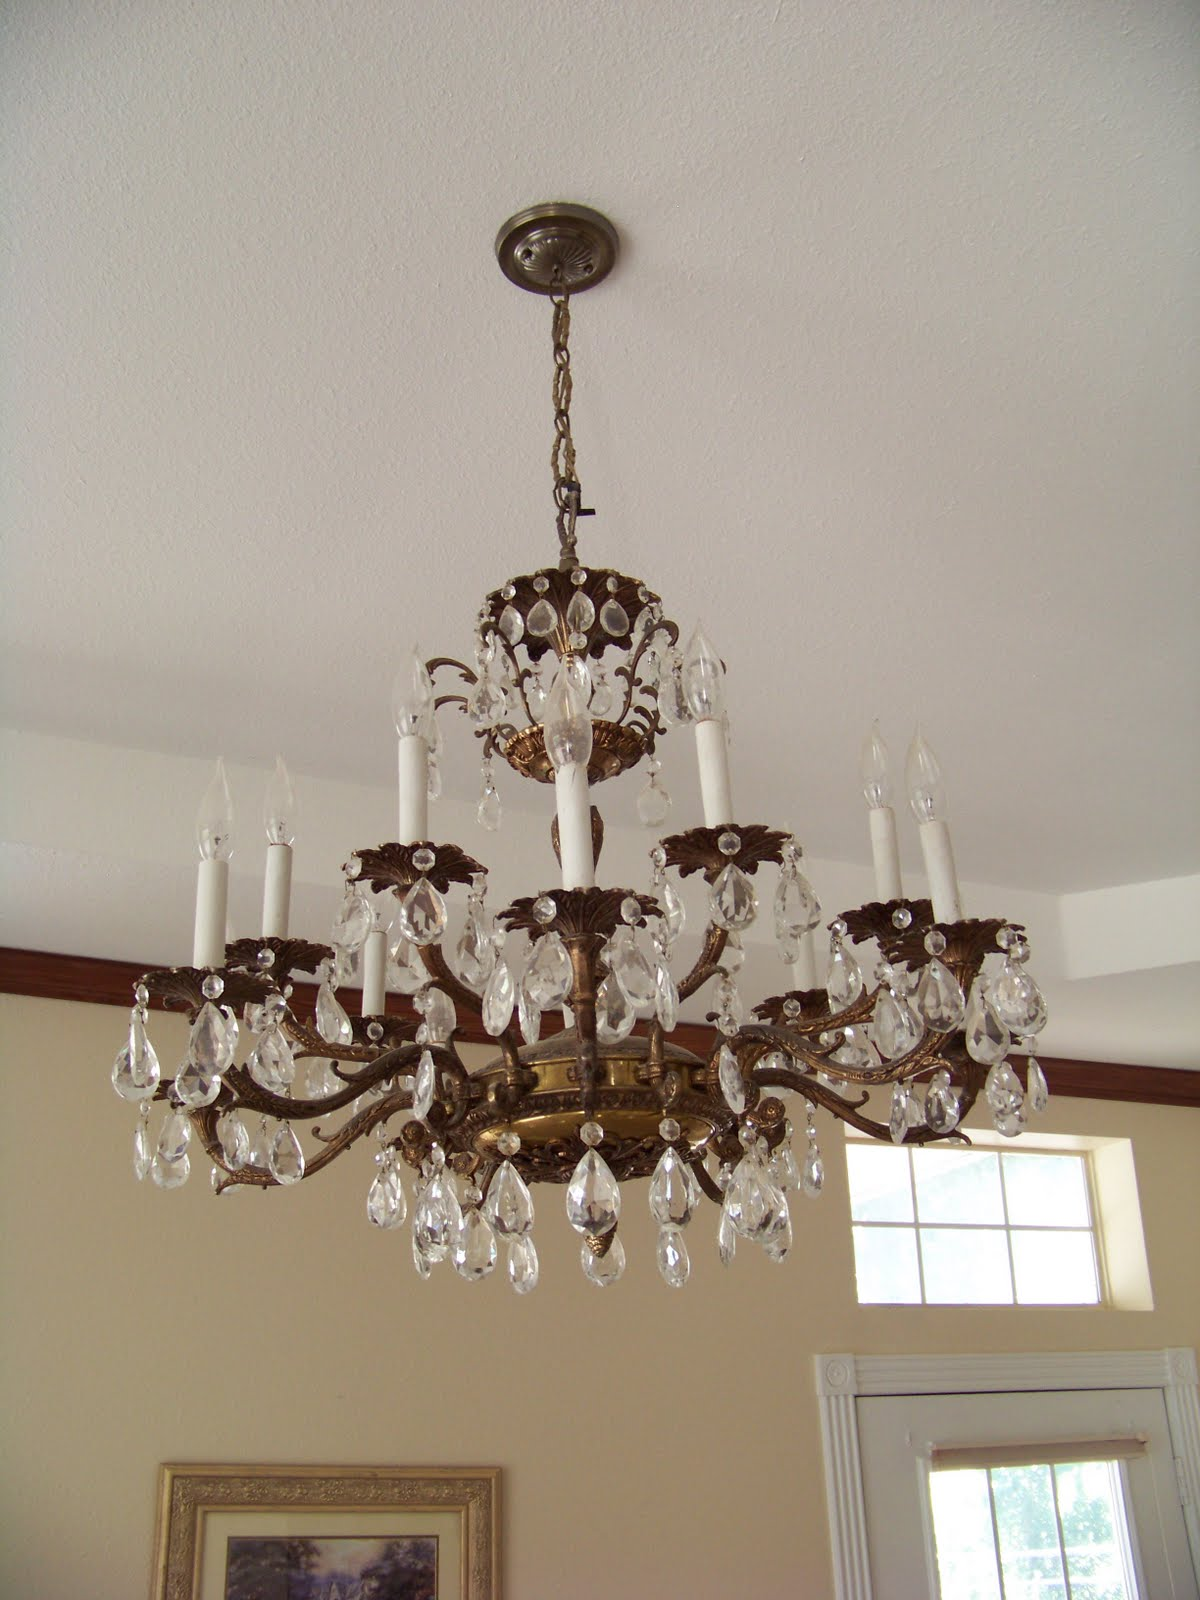 of the chandeliers. There were several. Just about every room had one title=